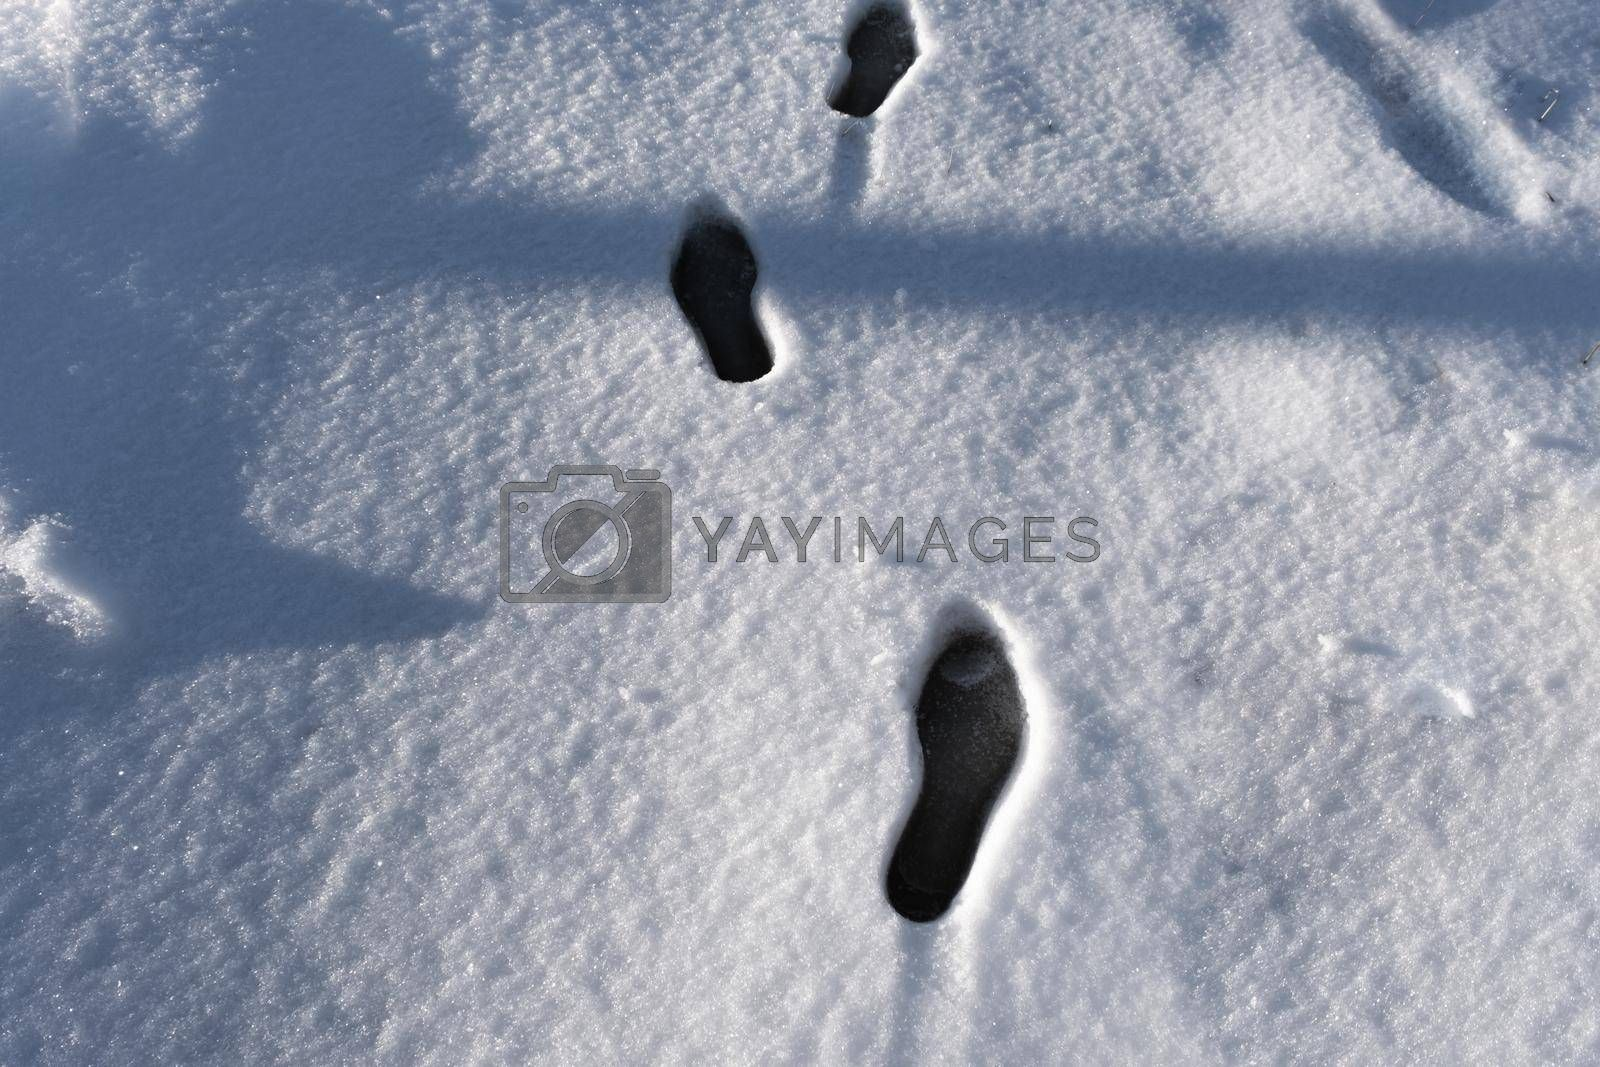 It depicts the human marks on the snow